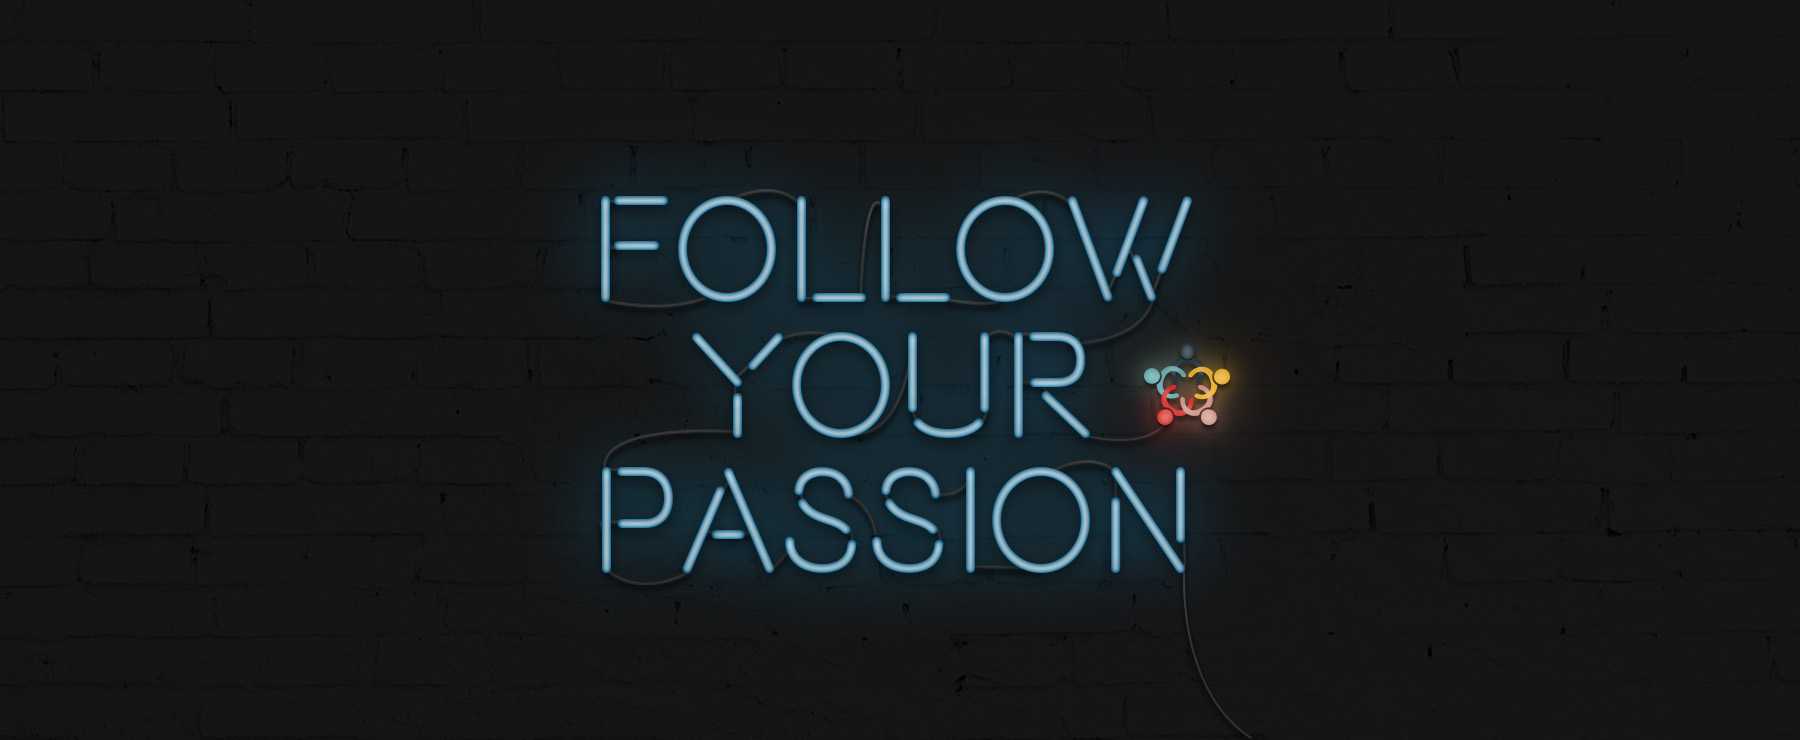 Turn Your Passion Into a Full-Time Gig